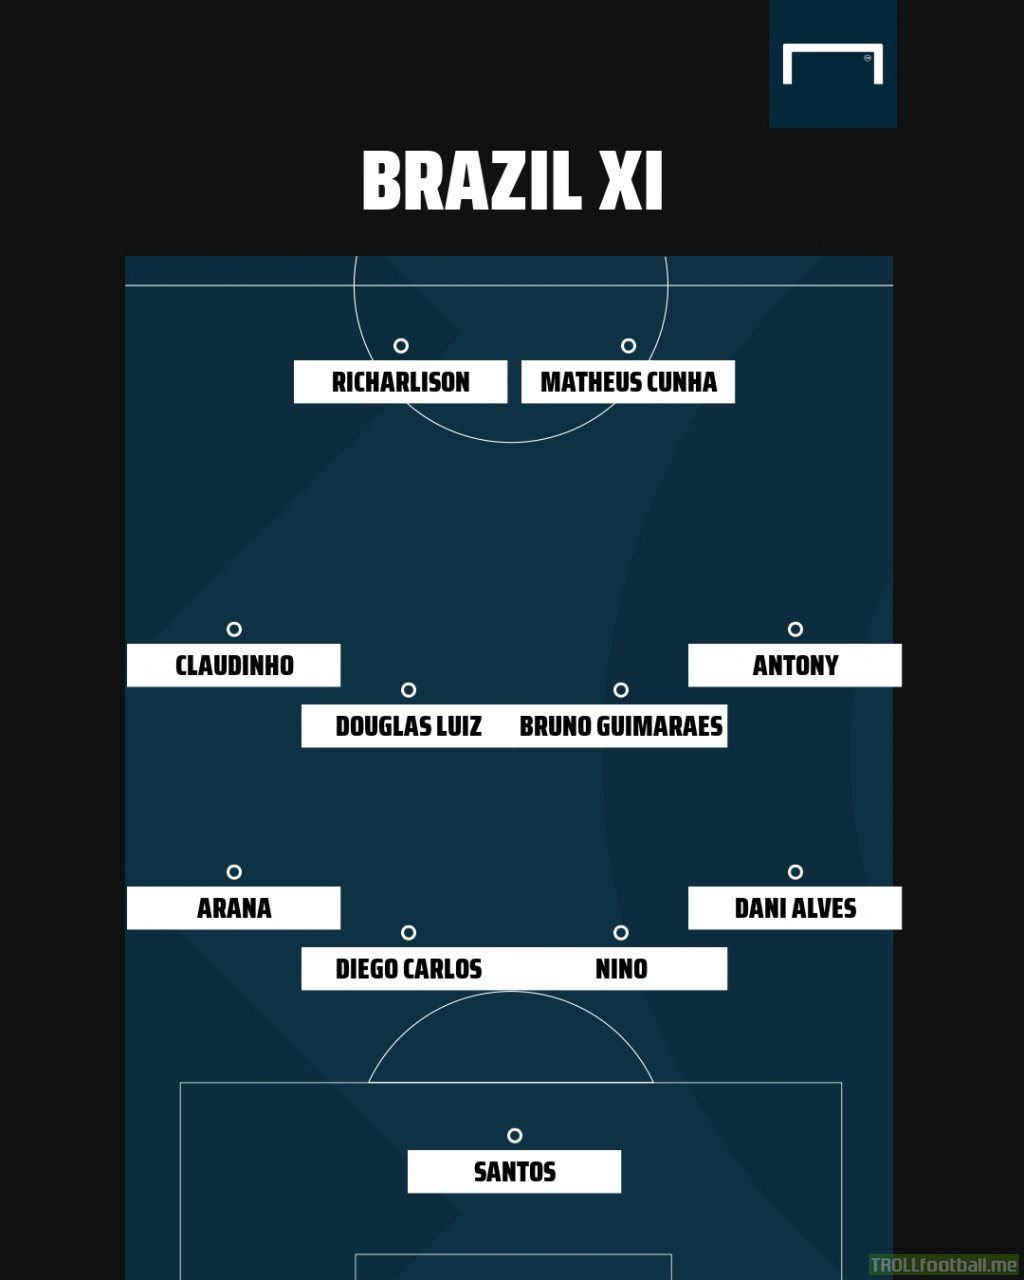 Brazil's Olympic XI is filled with household names